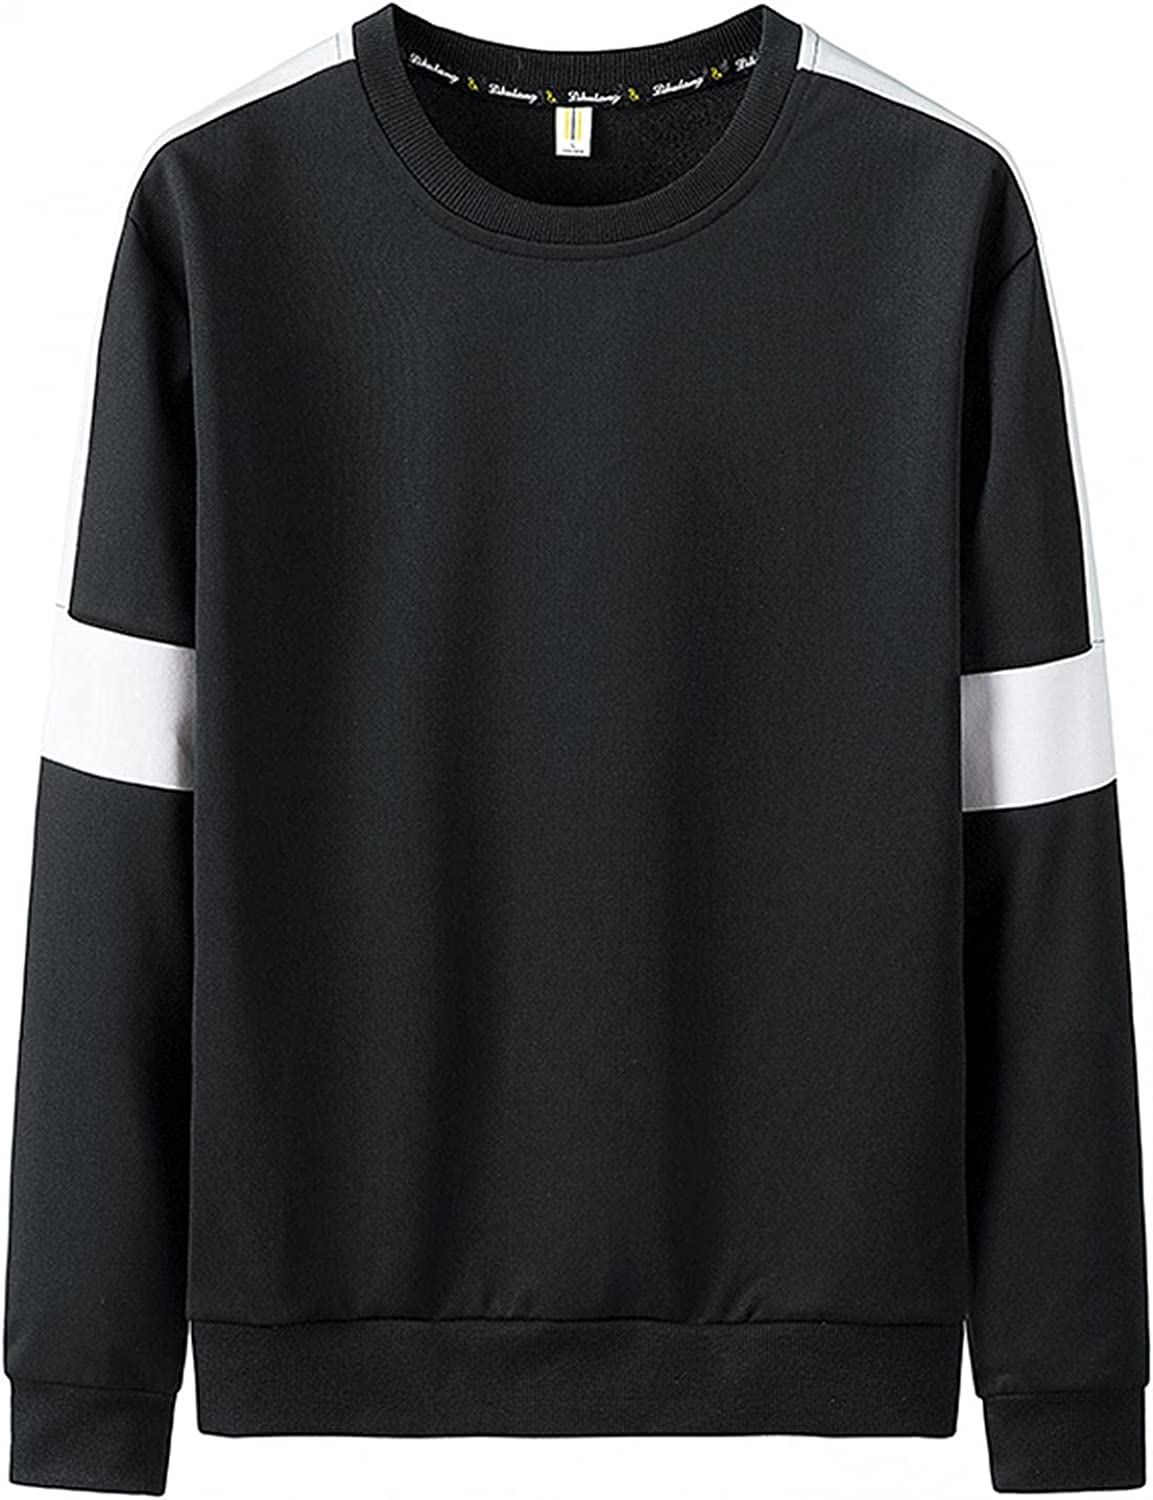 Aayomet Shirts for Men Fashion Thick Autumn Polyester Printed Long Sleeve Shirts O-Neck Casual Mens Sweatshirts